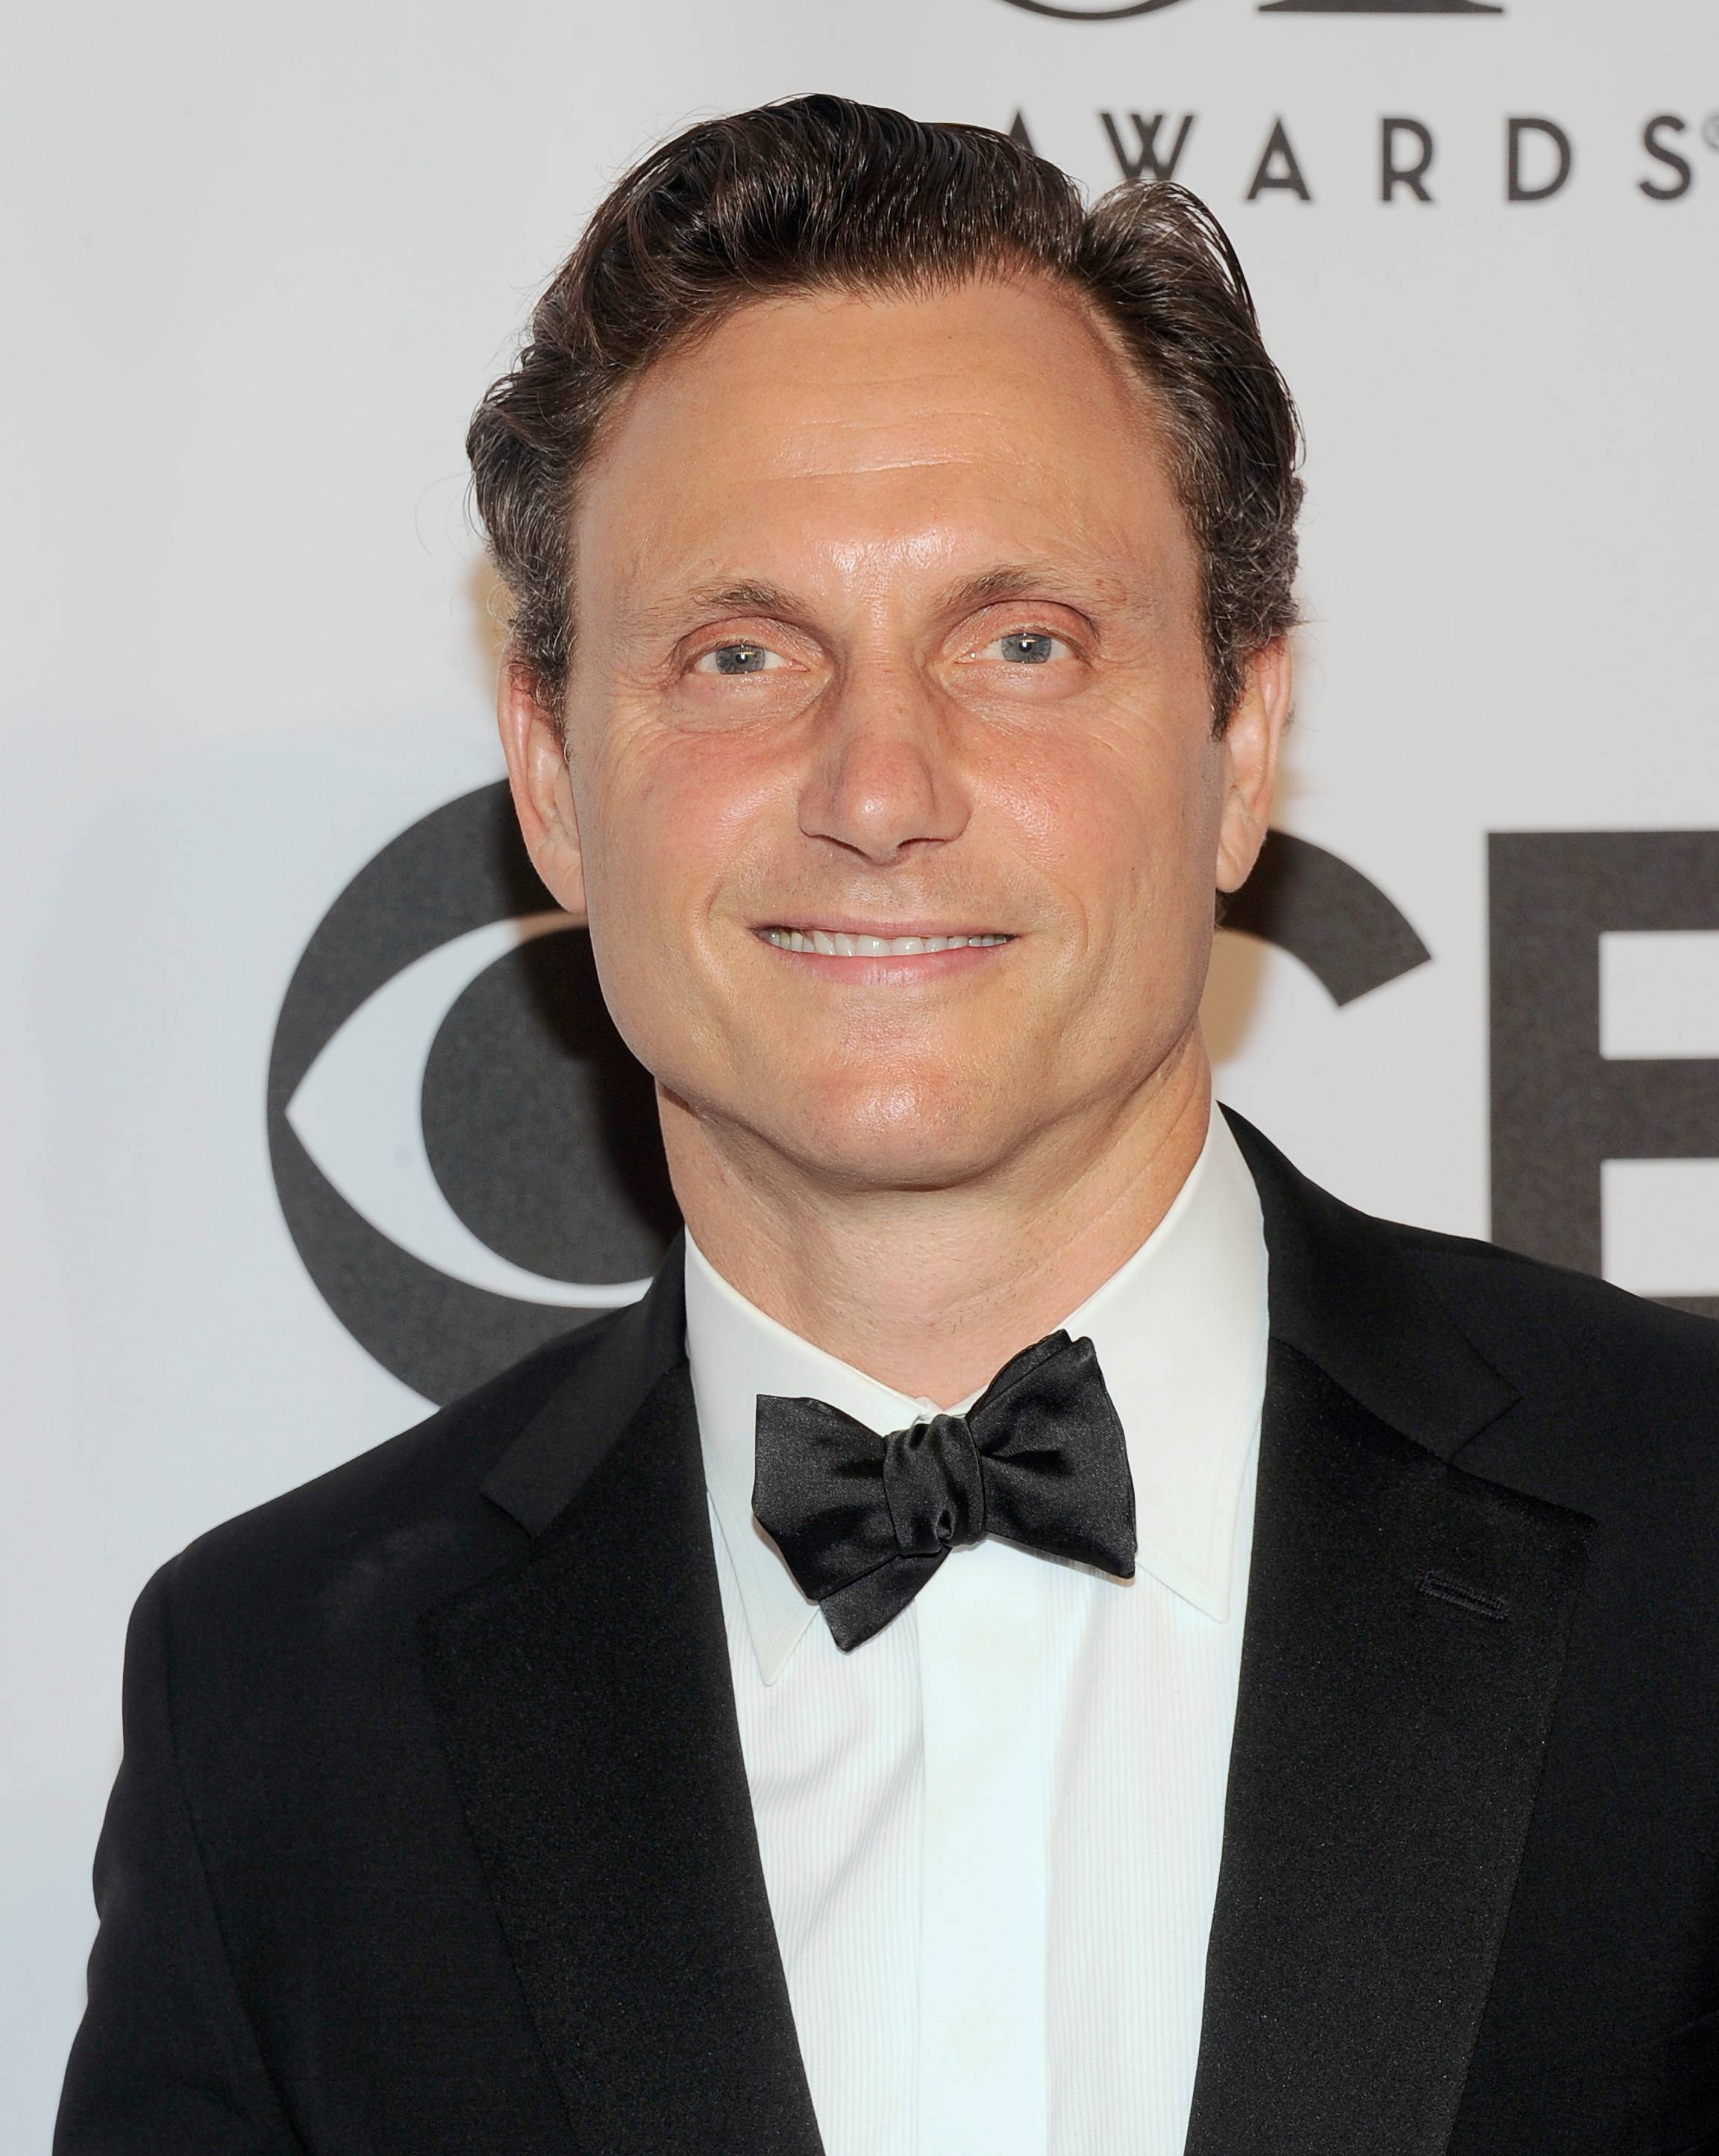 """Scandal"" star Tony Goldwyn arrives at the 68th annual Tony Awards at Radio City Music Hall."